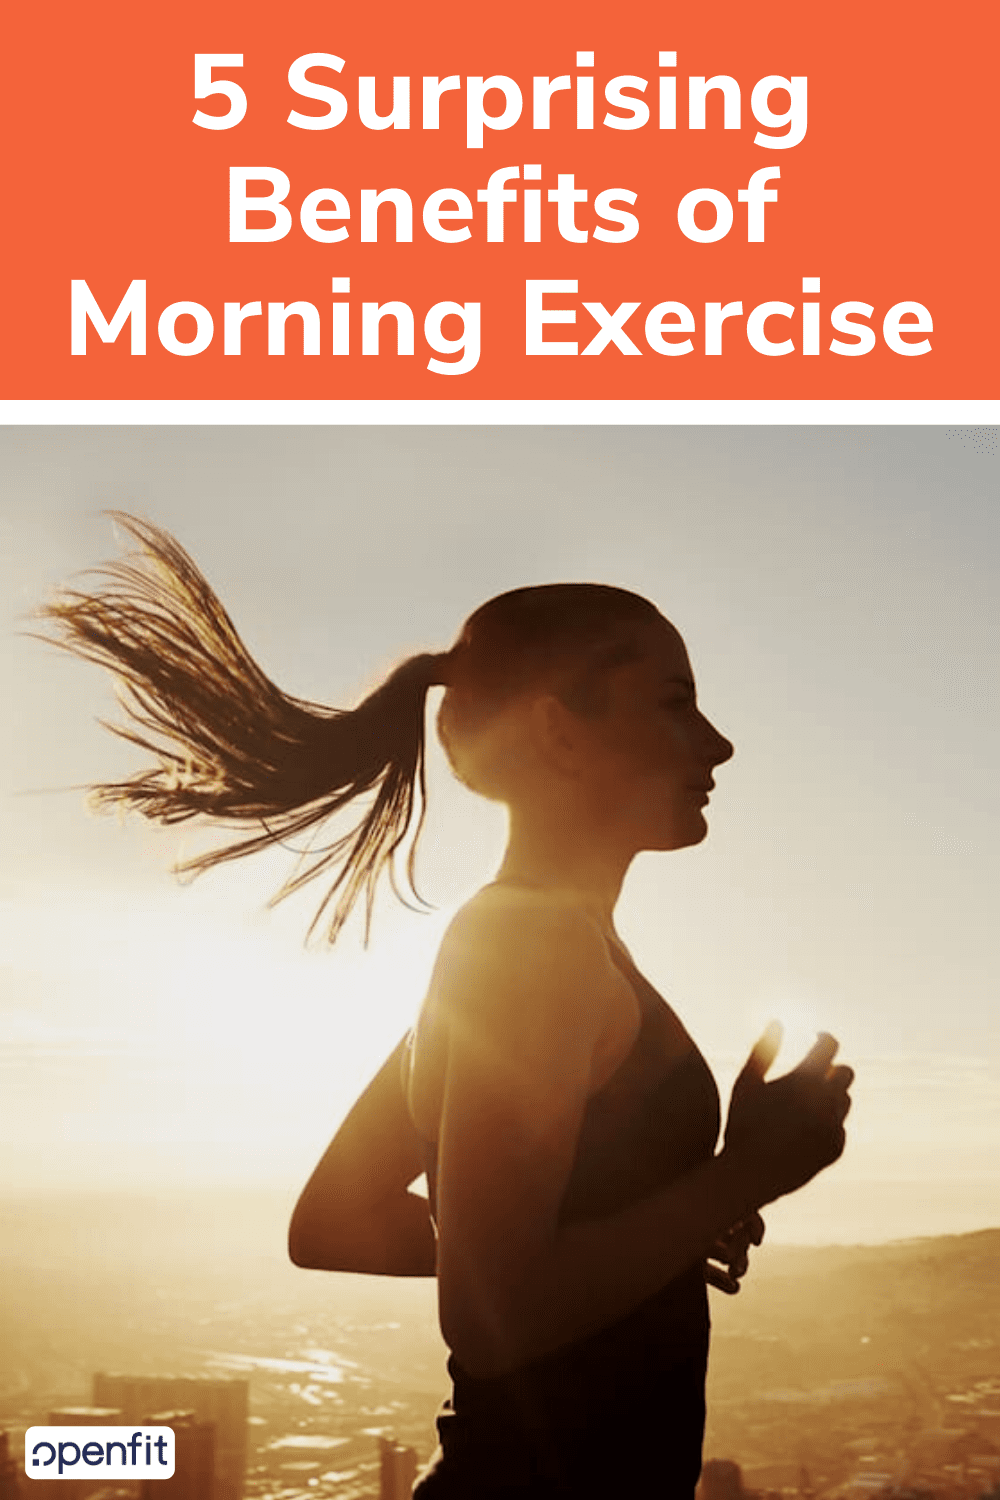 benefits of morning exercise pin image